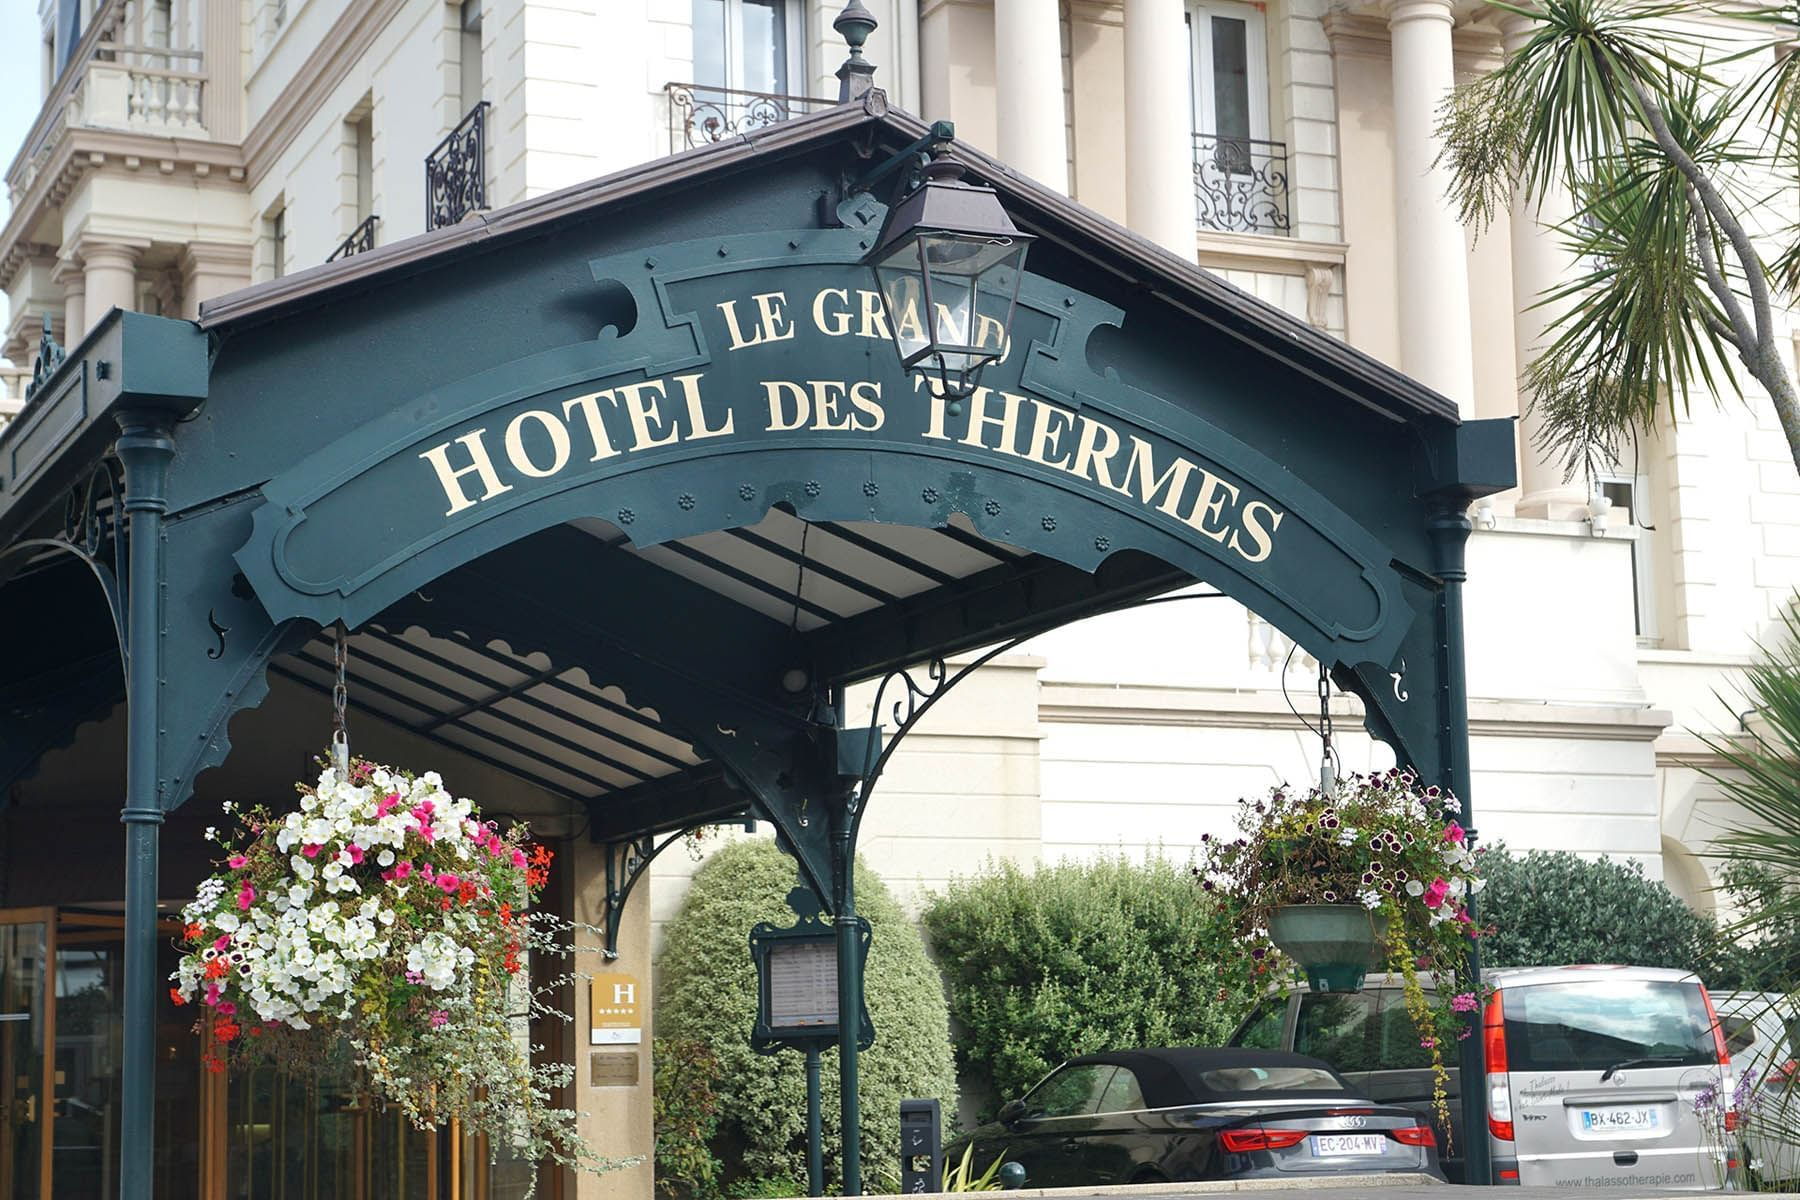 Entrance to Hotel at Grand Hotel des Thermes